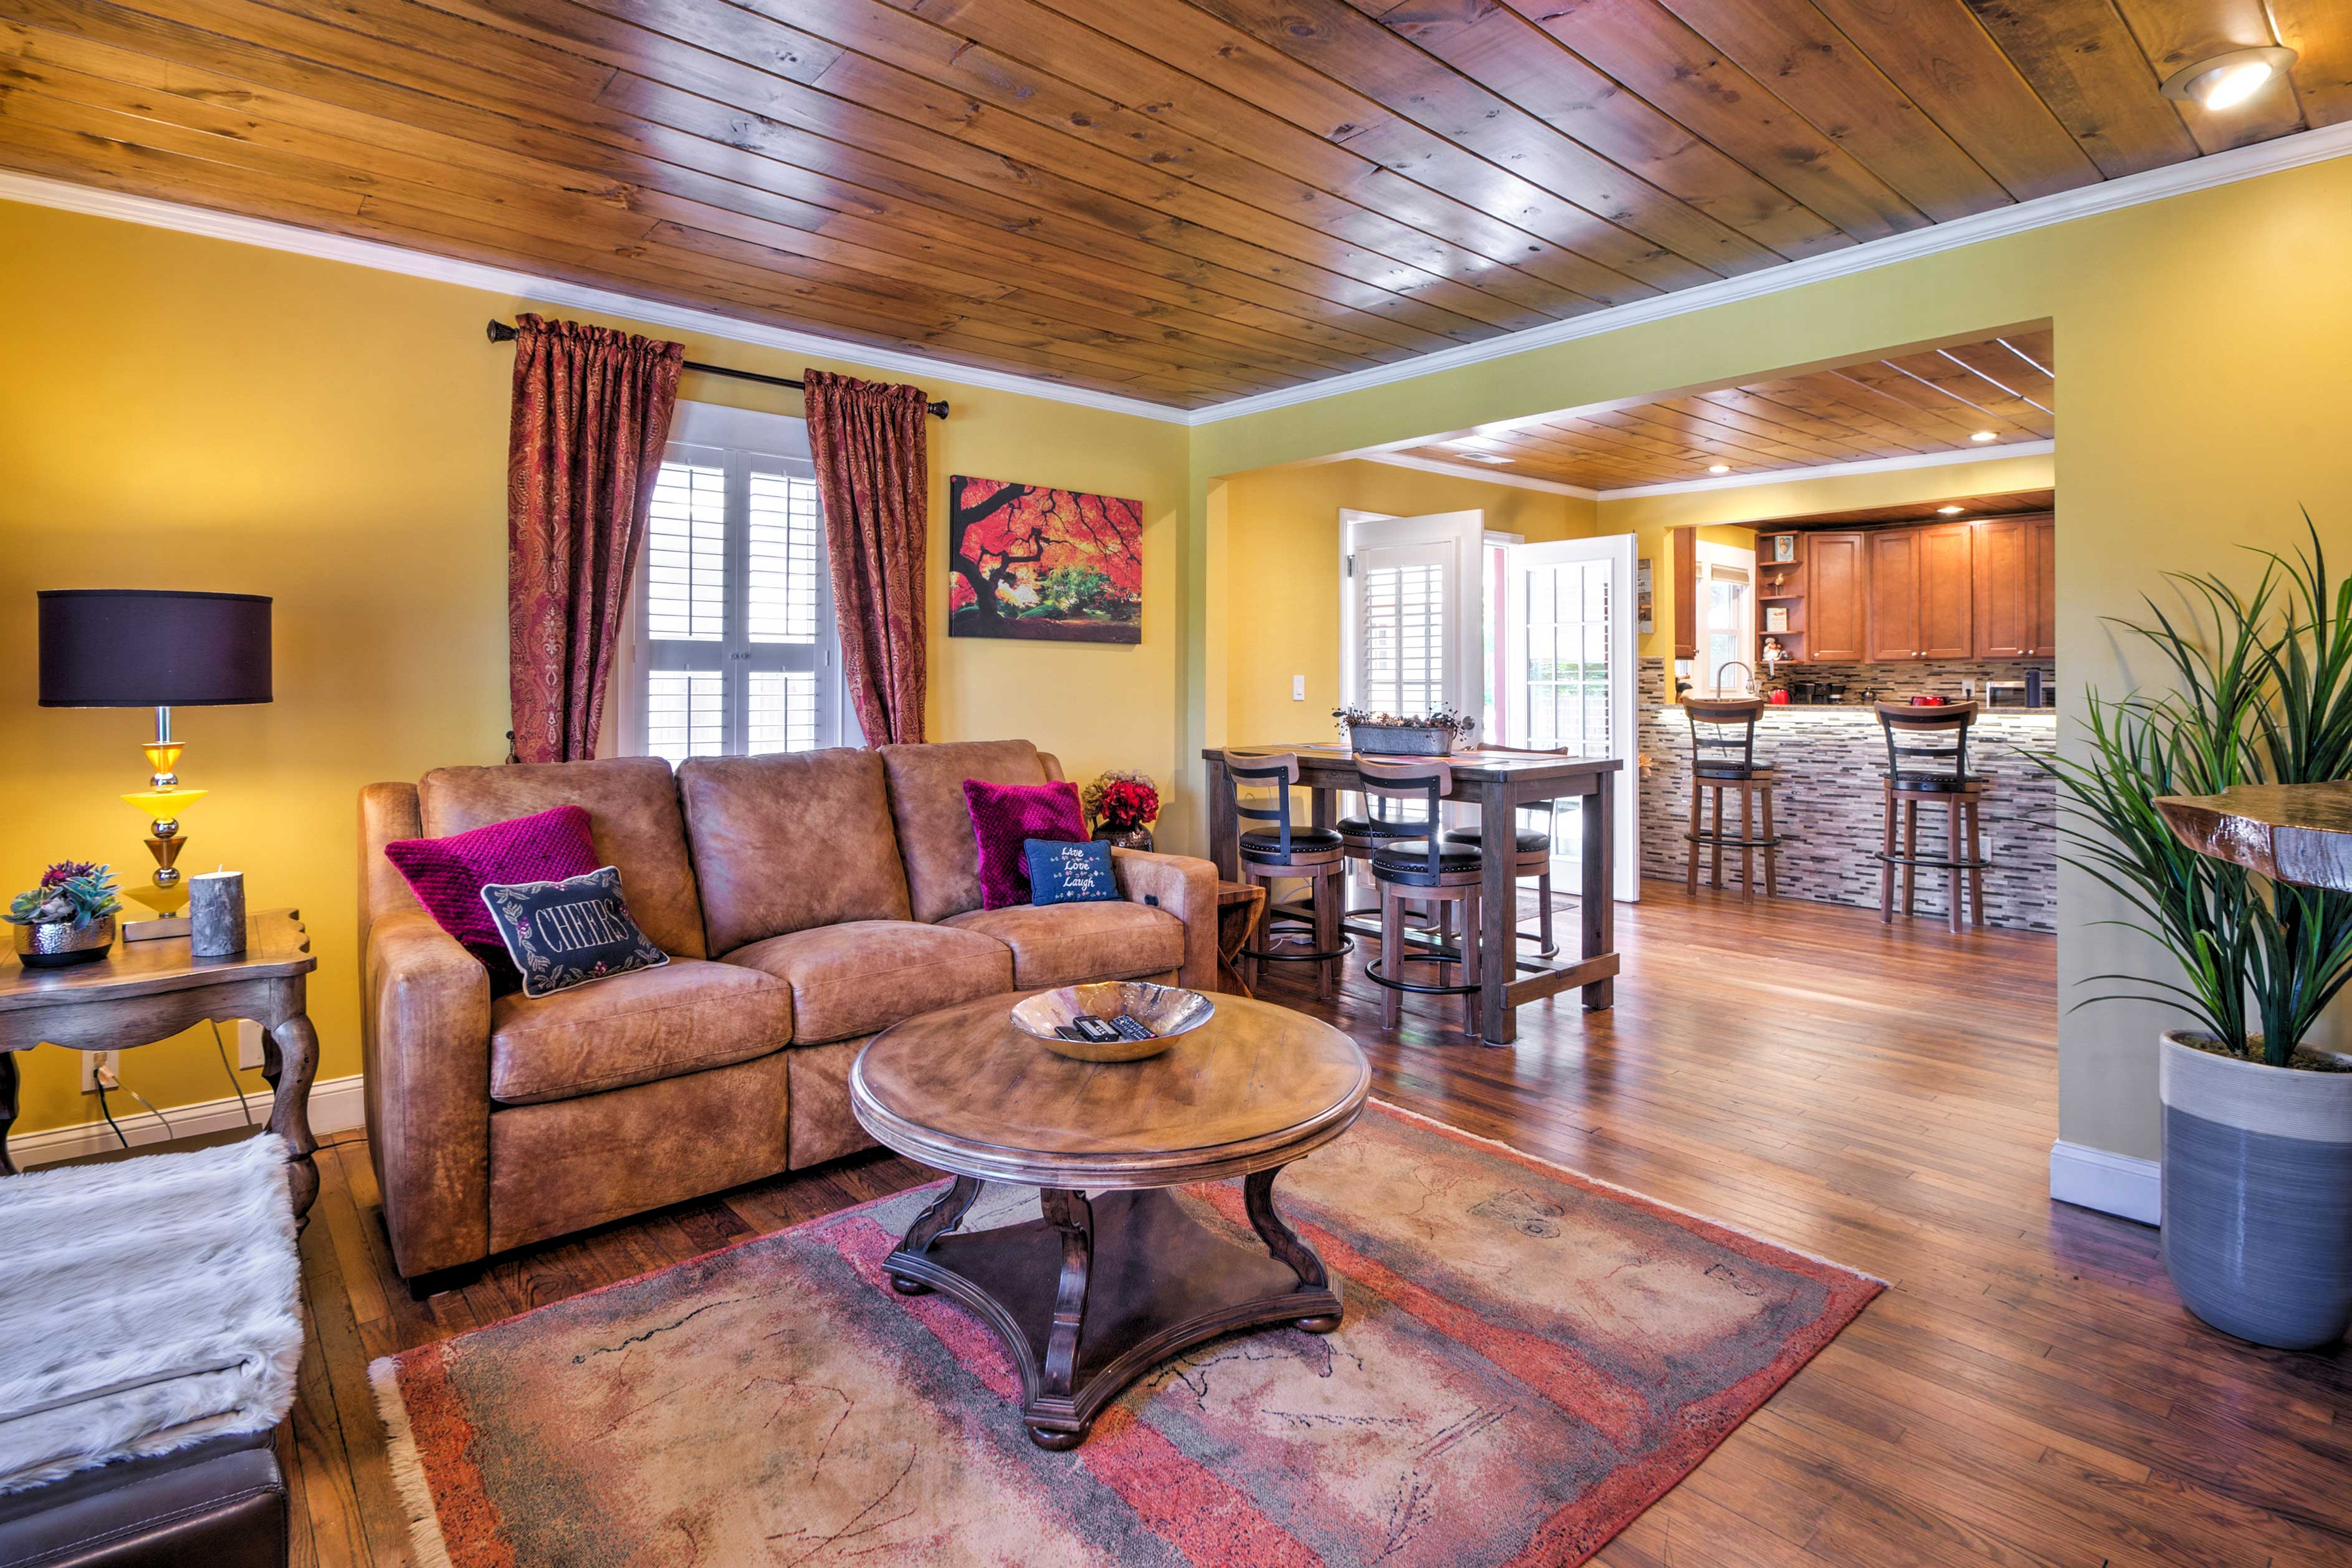 During your downtime, relax on the plush furniture in the living room.